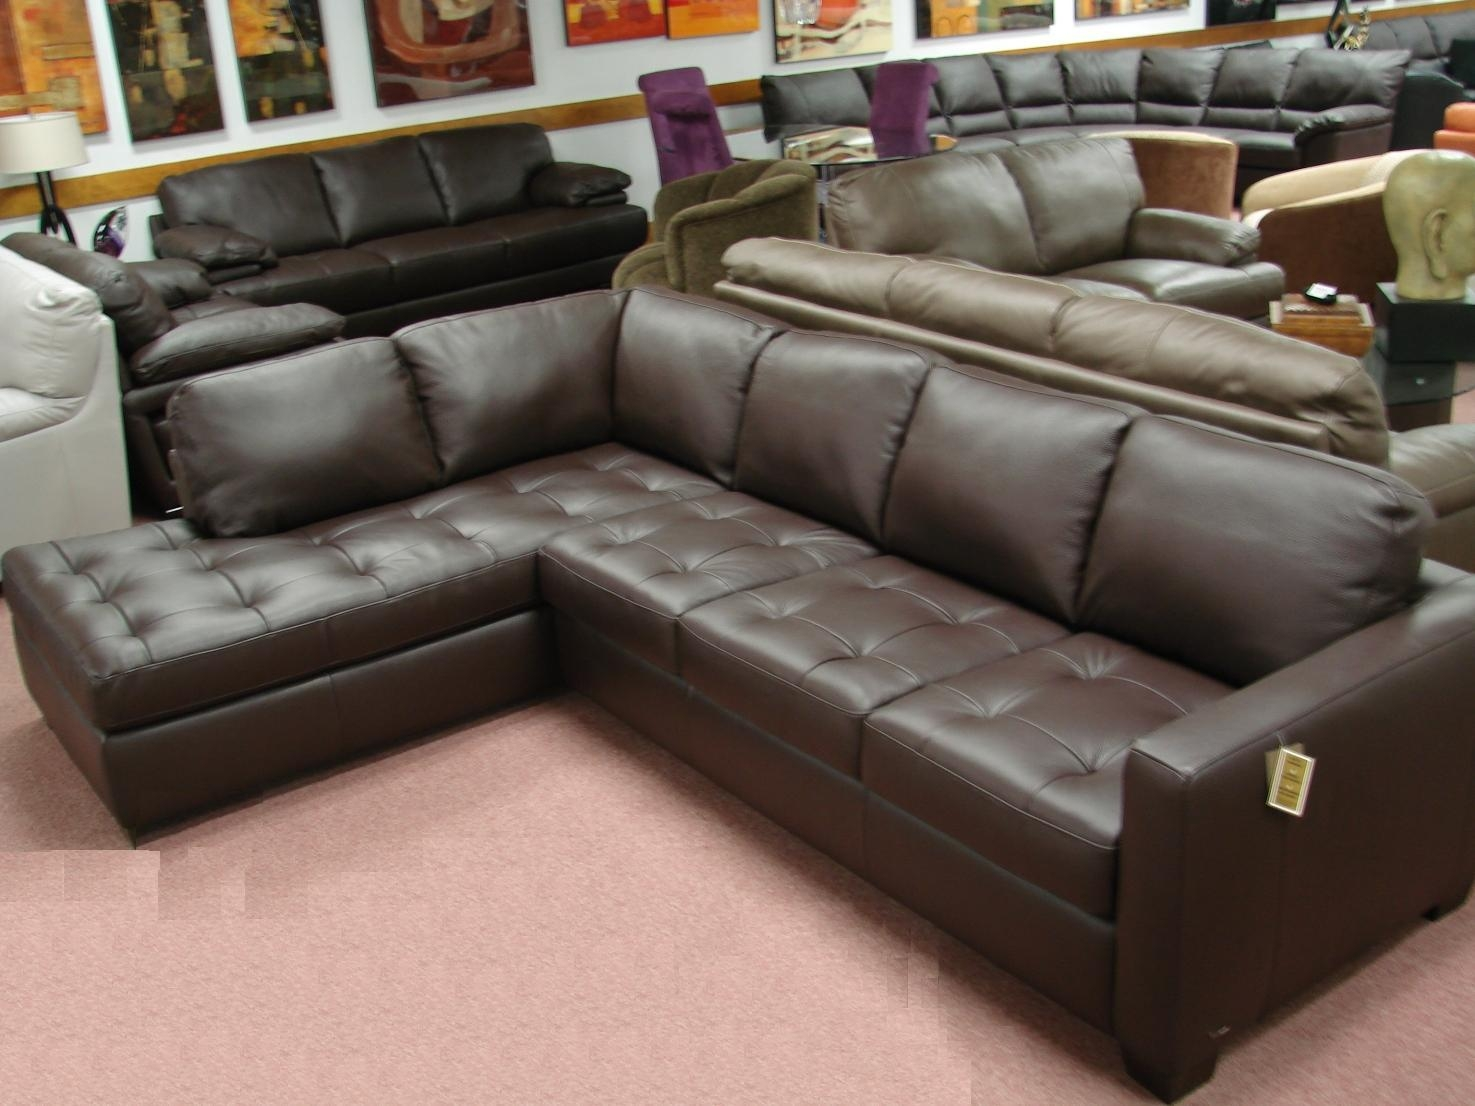 20 ideas of leather sofa sectionals for sale sofa ideas for Sectionals for sale